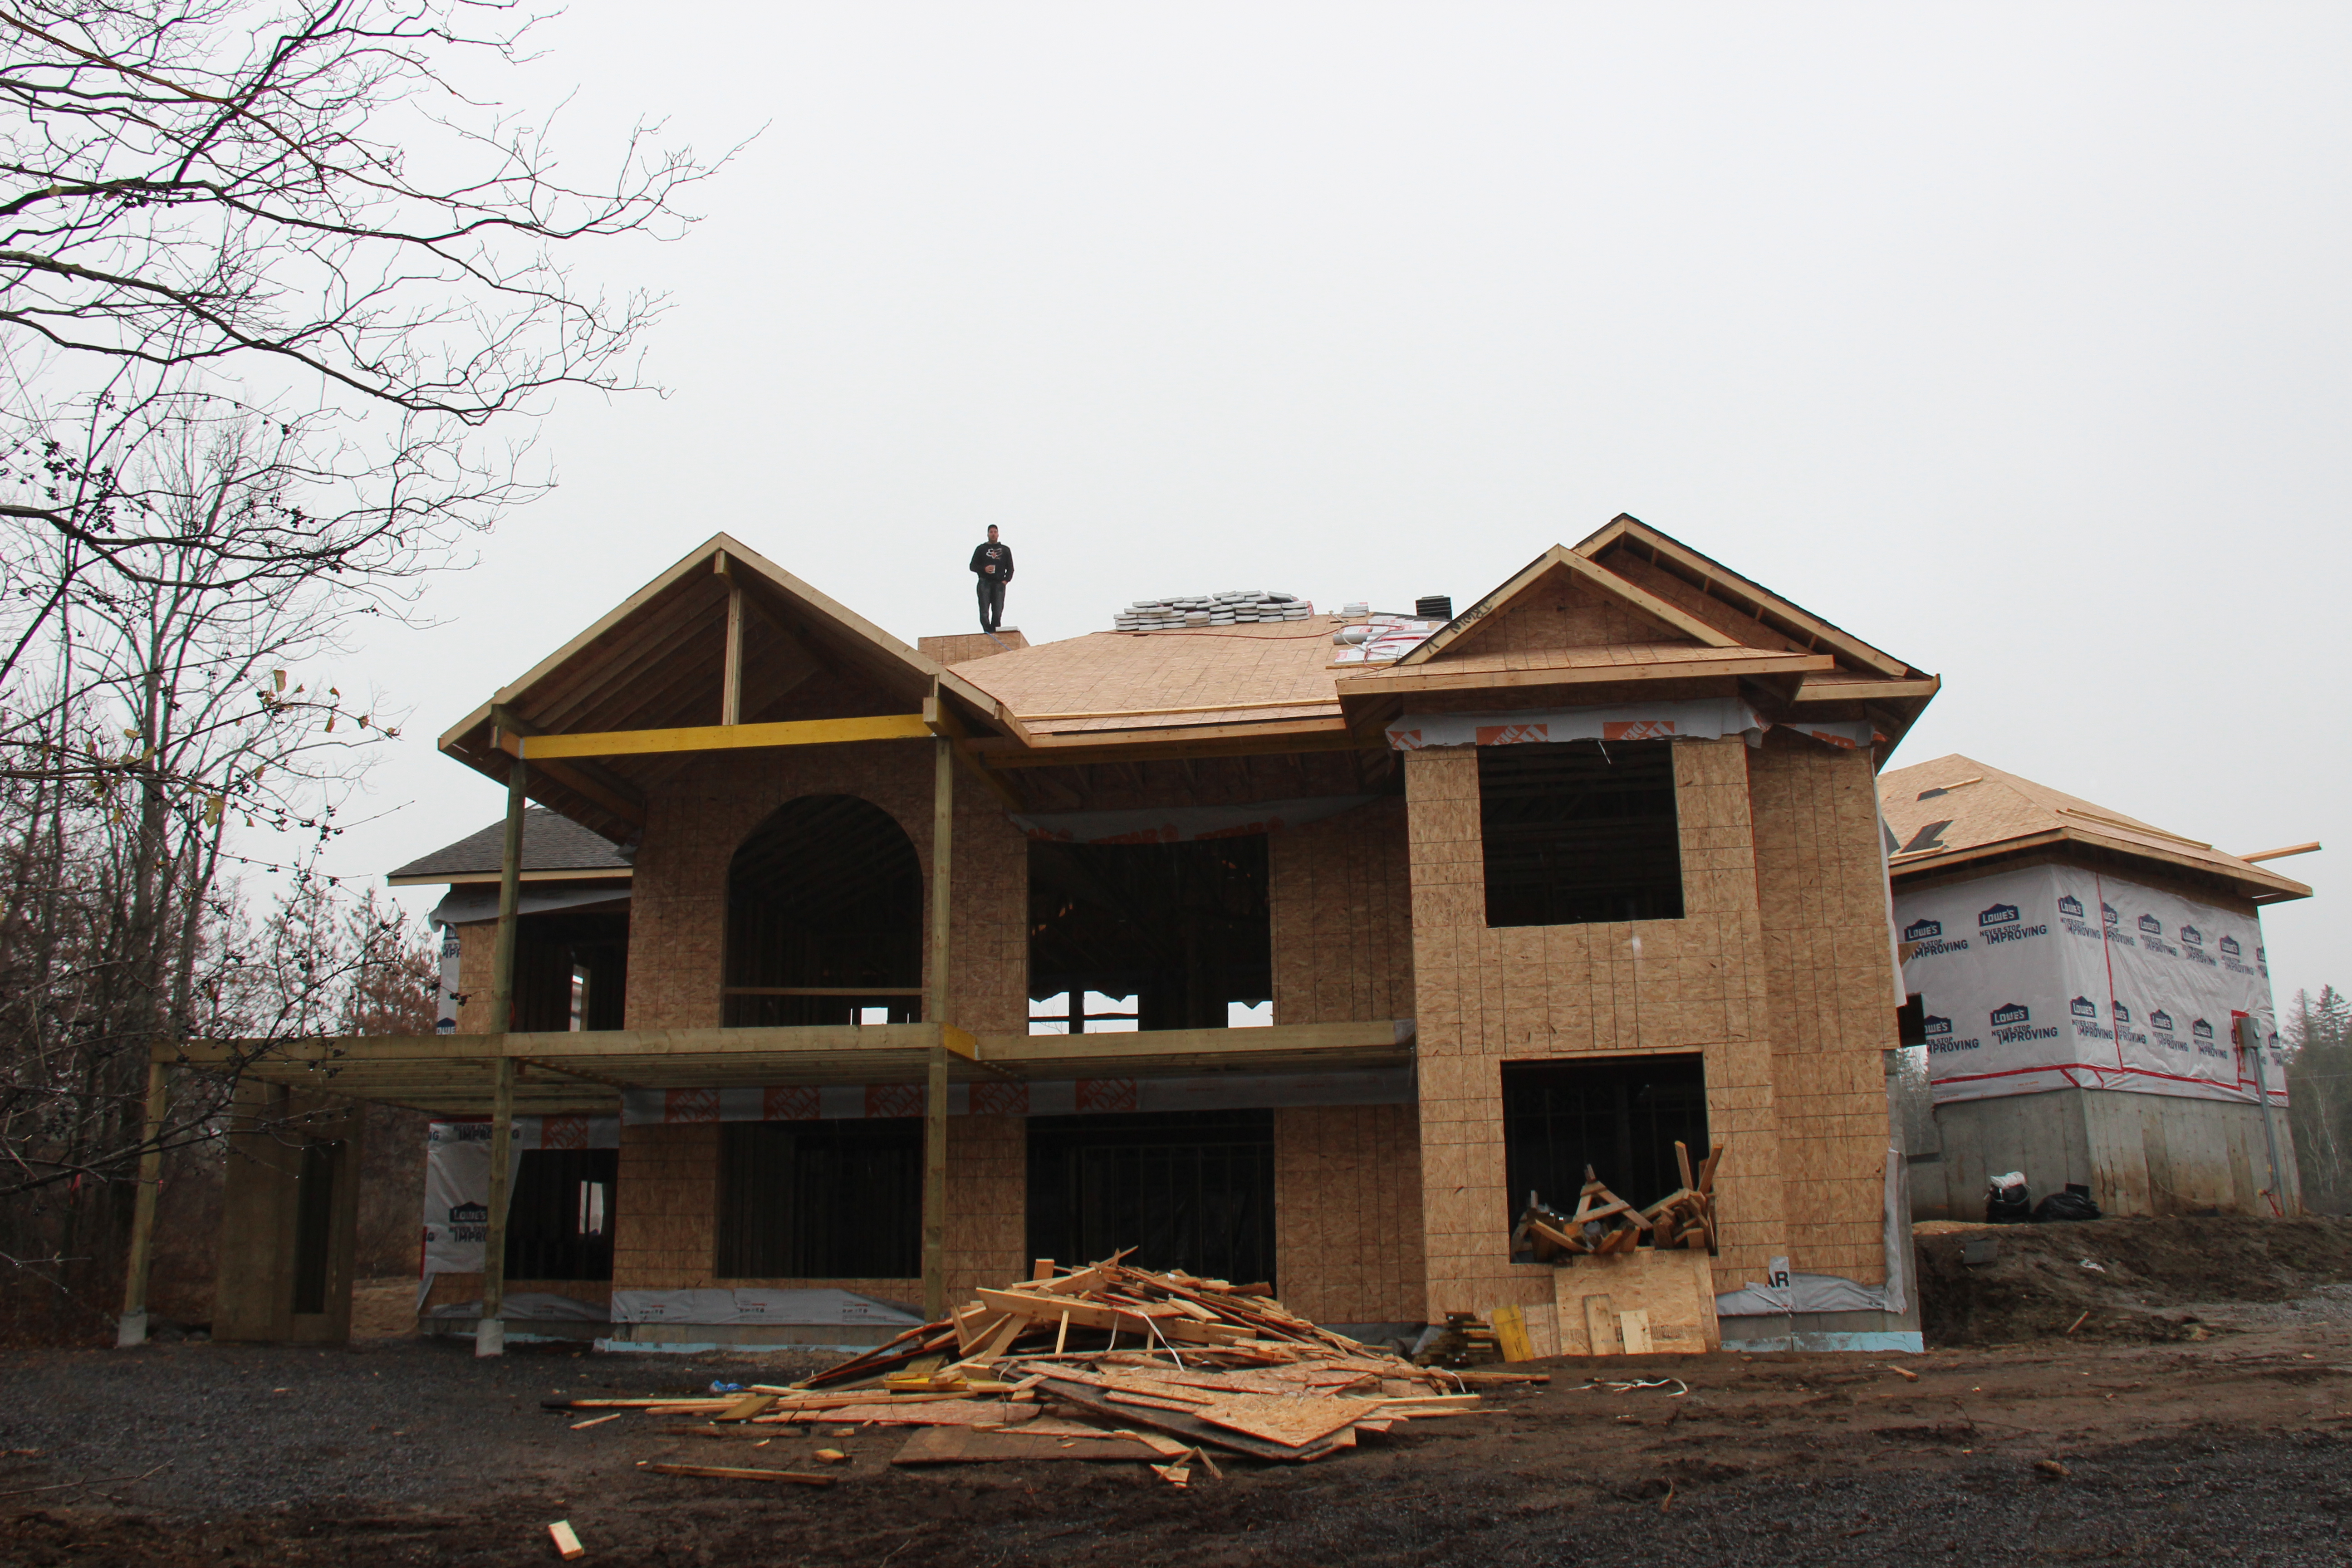 NL Renovations | general contracting & Home Renovations | home, kitchen, bathroom, windows, doors, siding, fences, decks, basement, laundry room, new builds